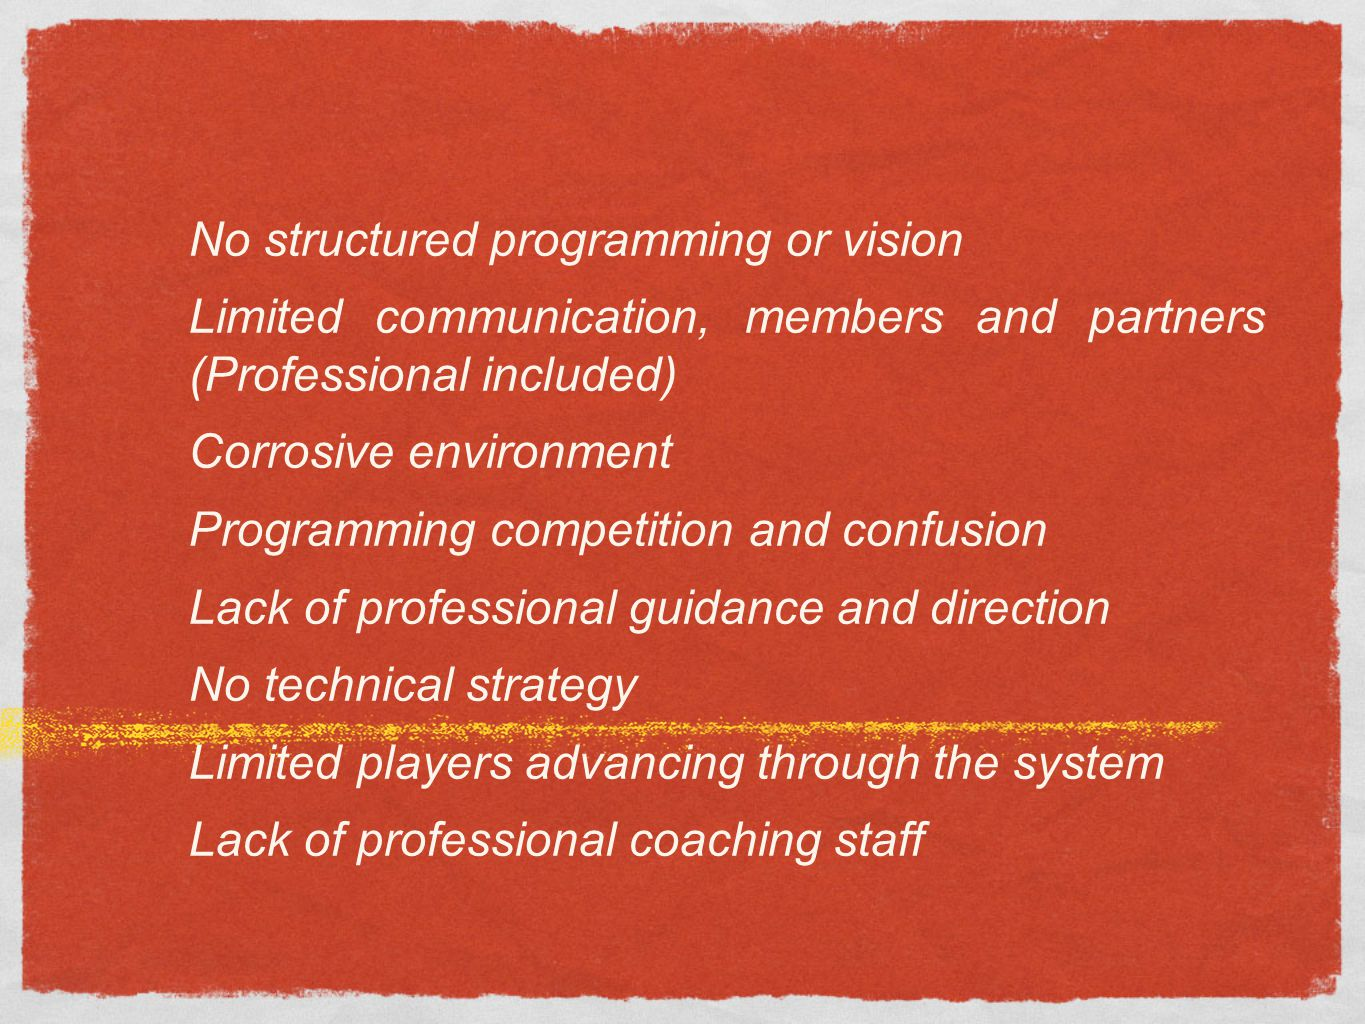 No structured programming or vision